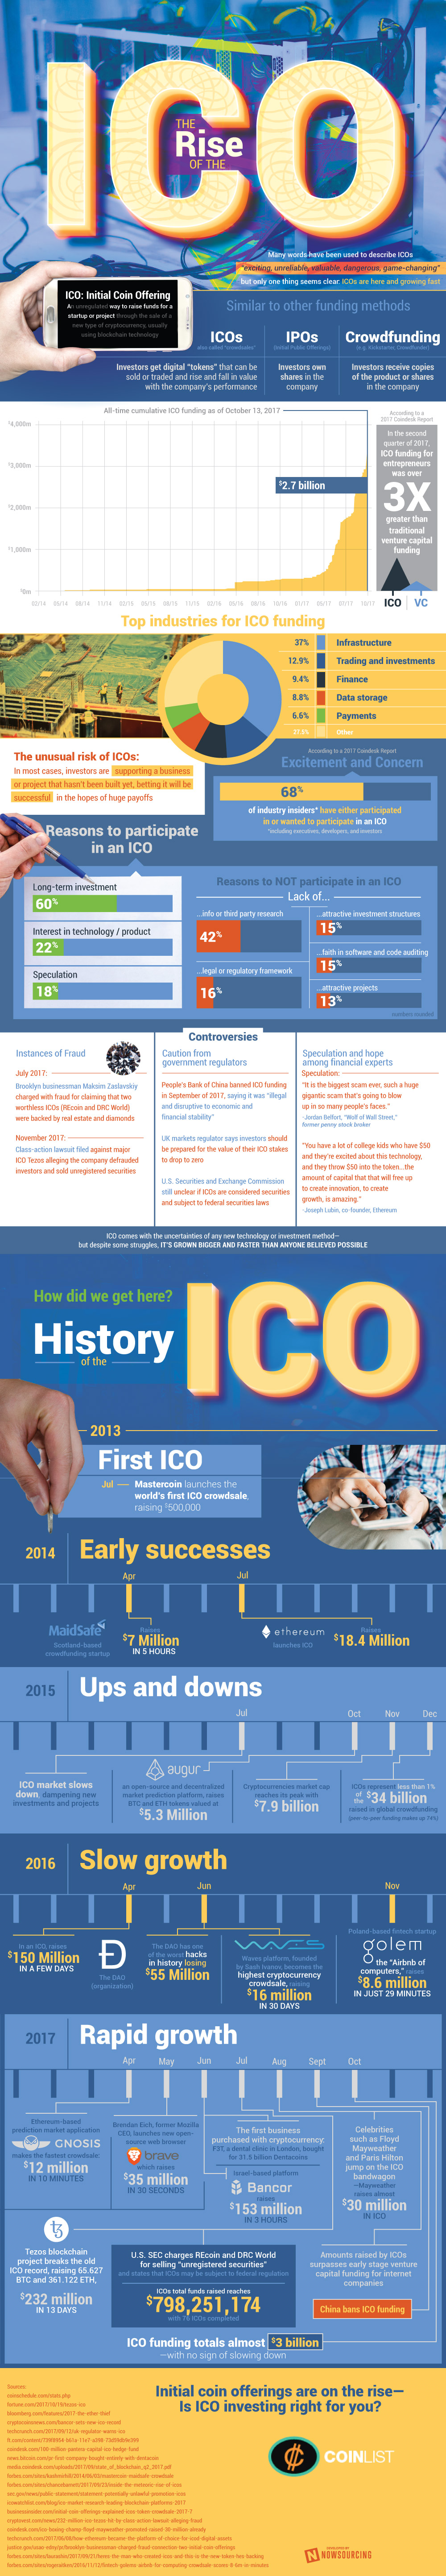 Why Initial Coin Offerings (ICO) are on the Rise - Infographic